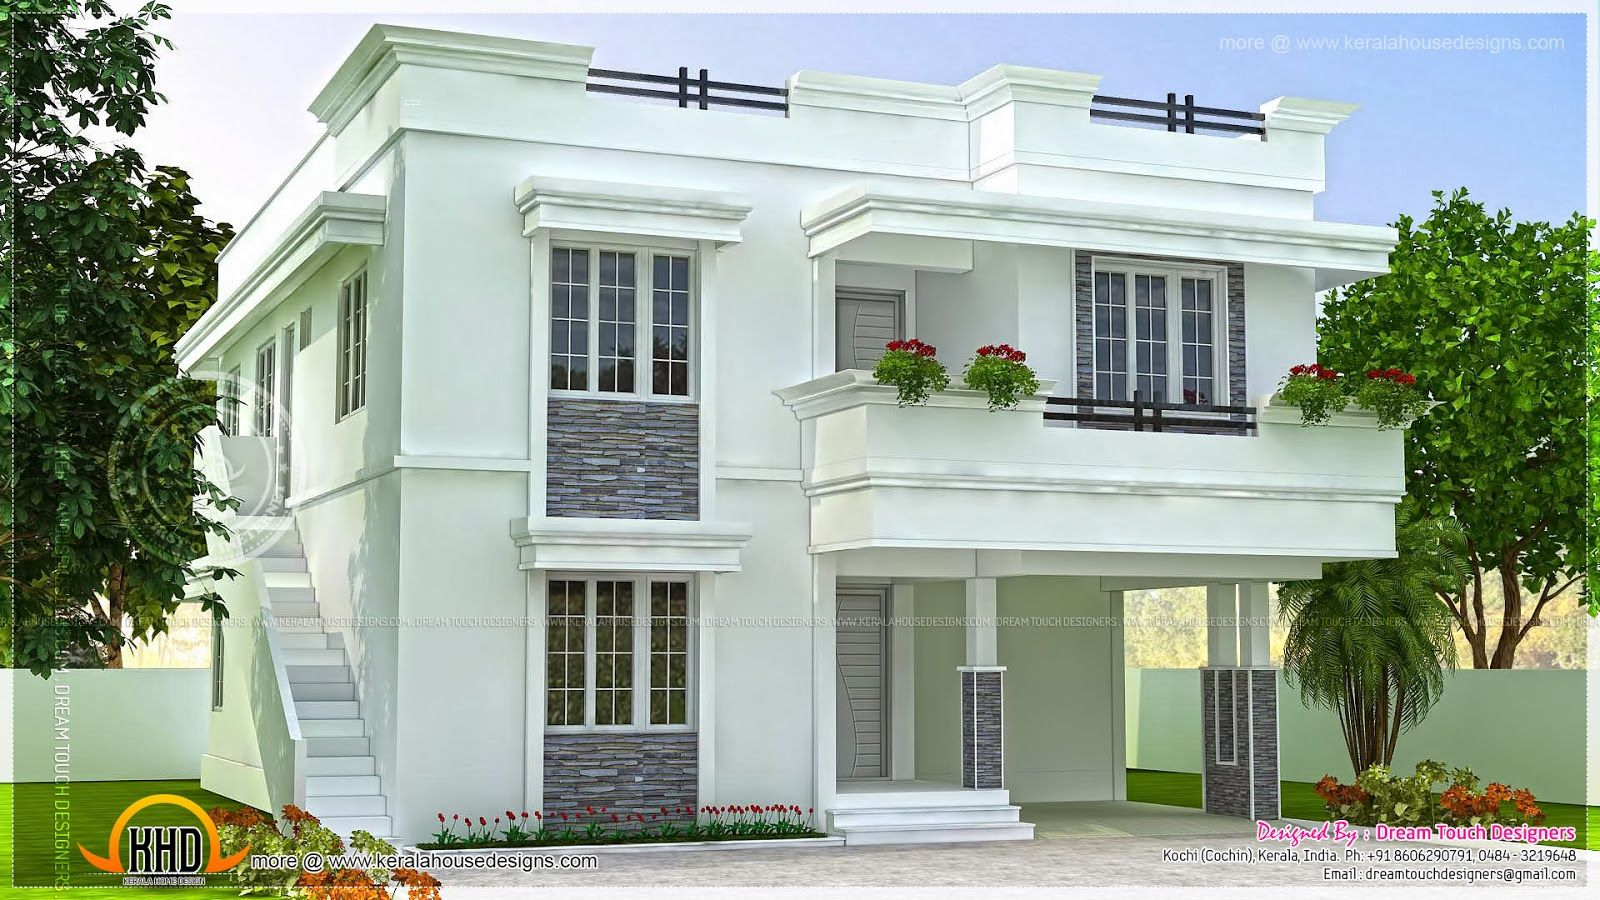 Front Elevation Noida : Beautiful house designs rent on flat in noida